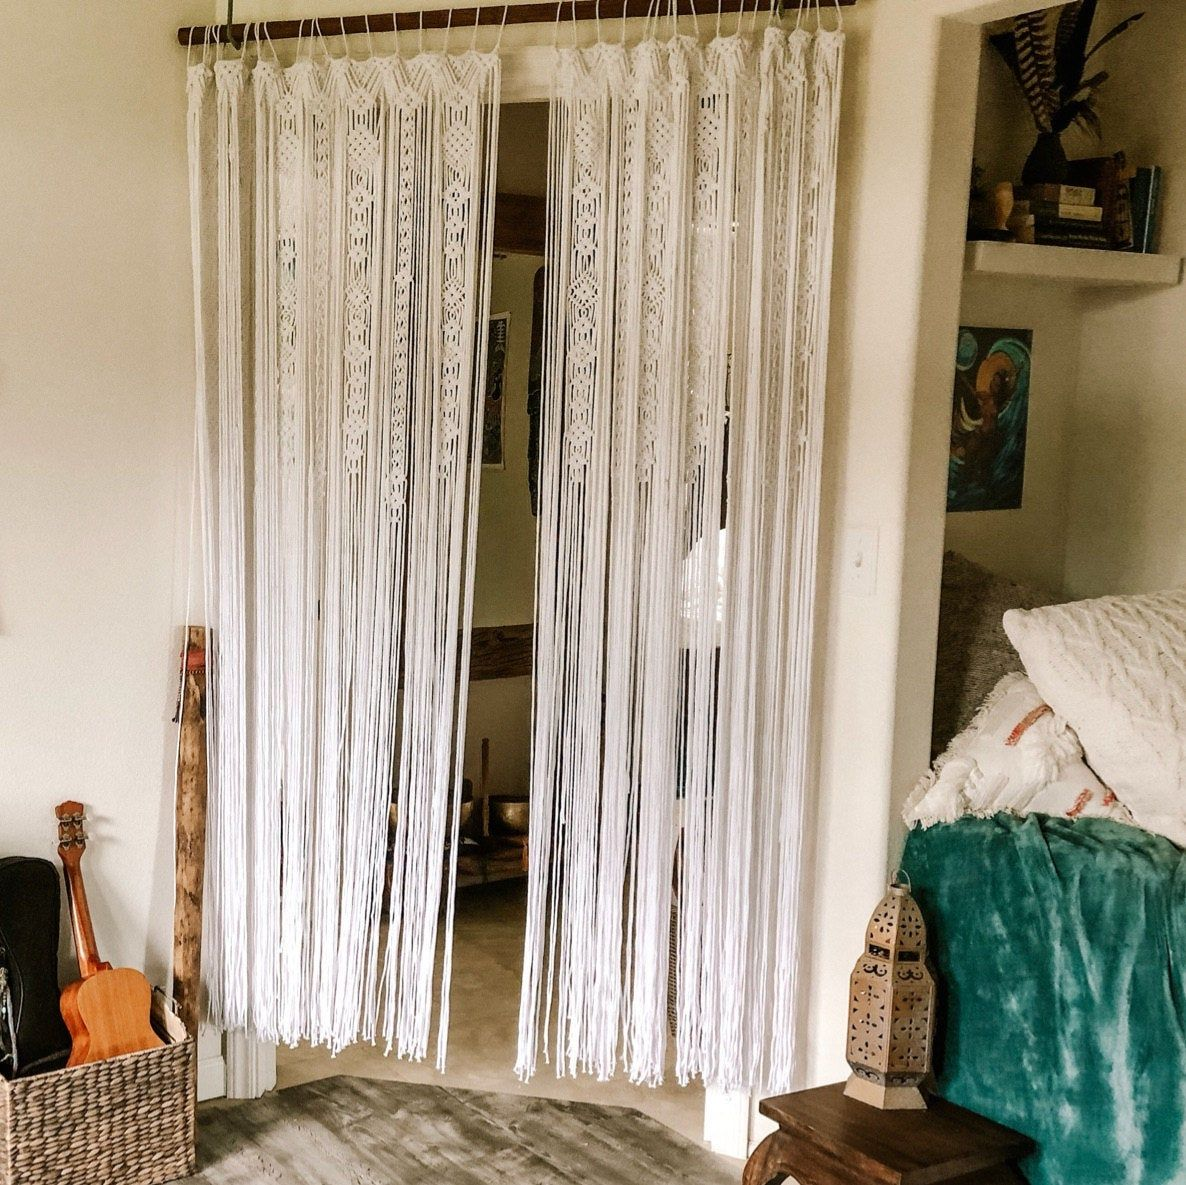 Large Macrame Door Curtains Of 2 Or 1 Panels Macrame Window Etsy Macrame Curtain Macrame Door Curtain Large Macrame Wall Hanging